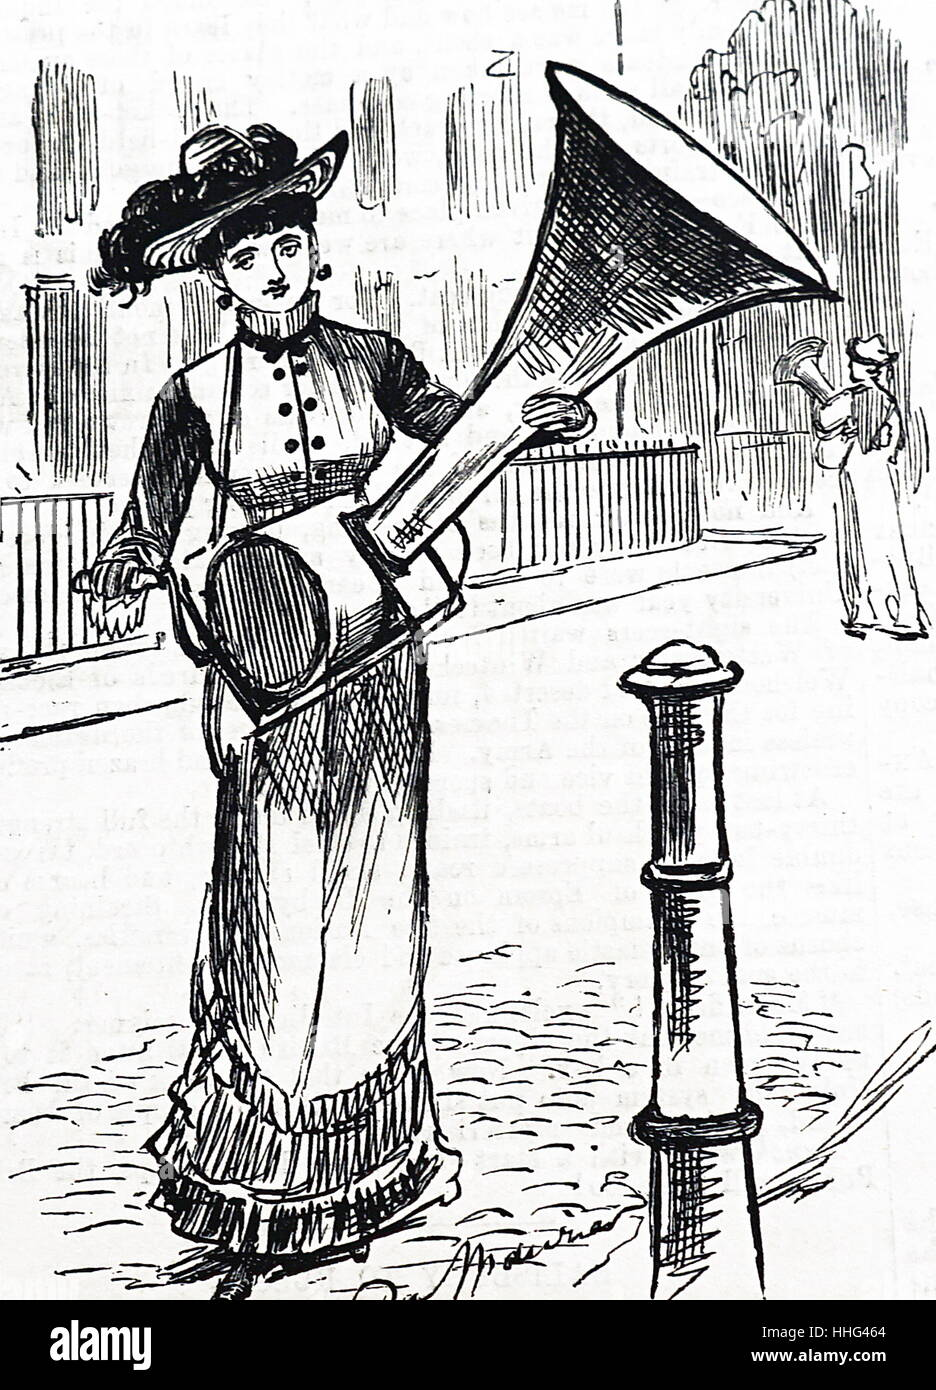 Proposed use for Edison's PHONOGRAPH From Punch, London, 20 April 1878 - Stock Image